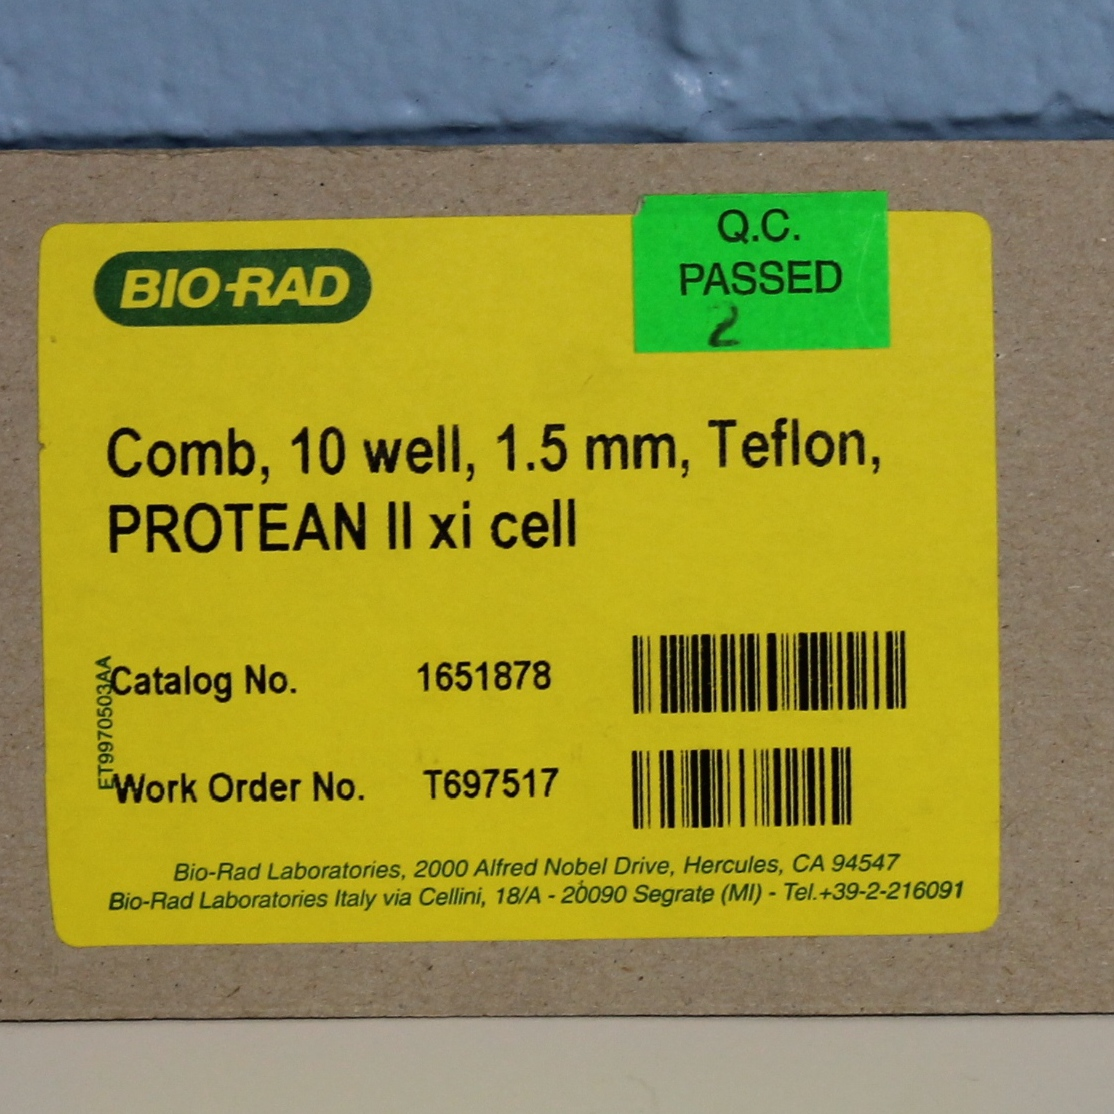 Bio-Rad PROTEAN II xi Comb CAT No. 1651878;10-well, 1.5 mm, Teflon Image